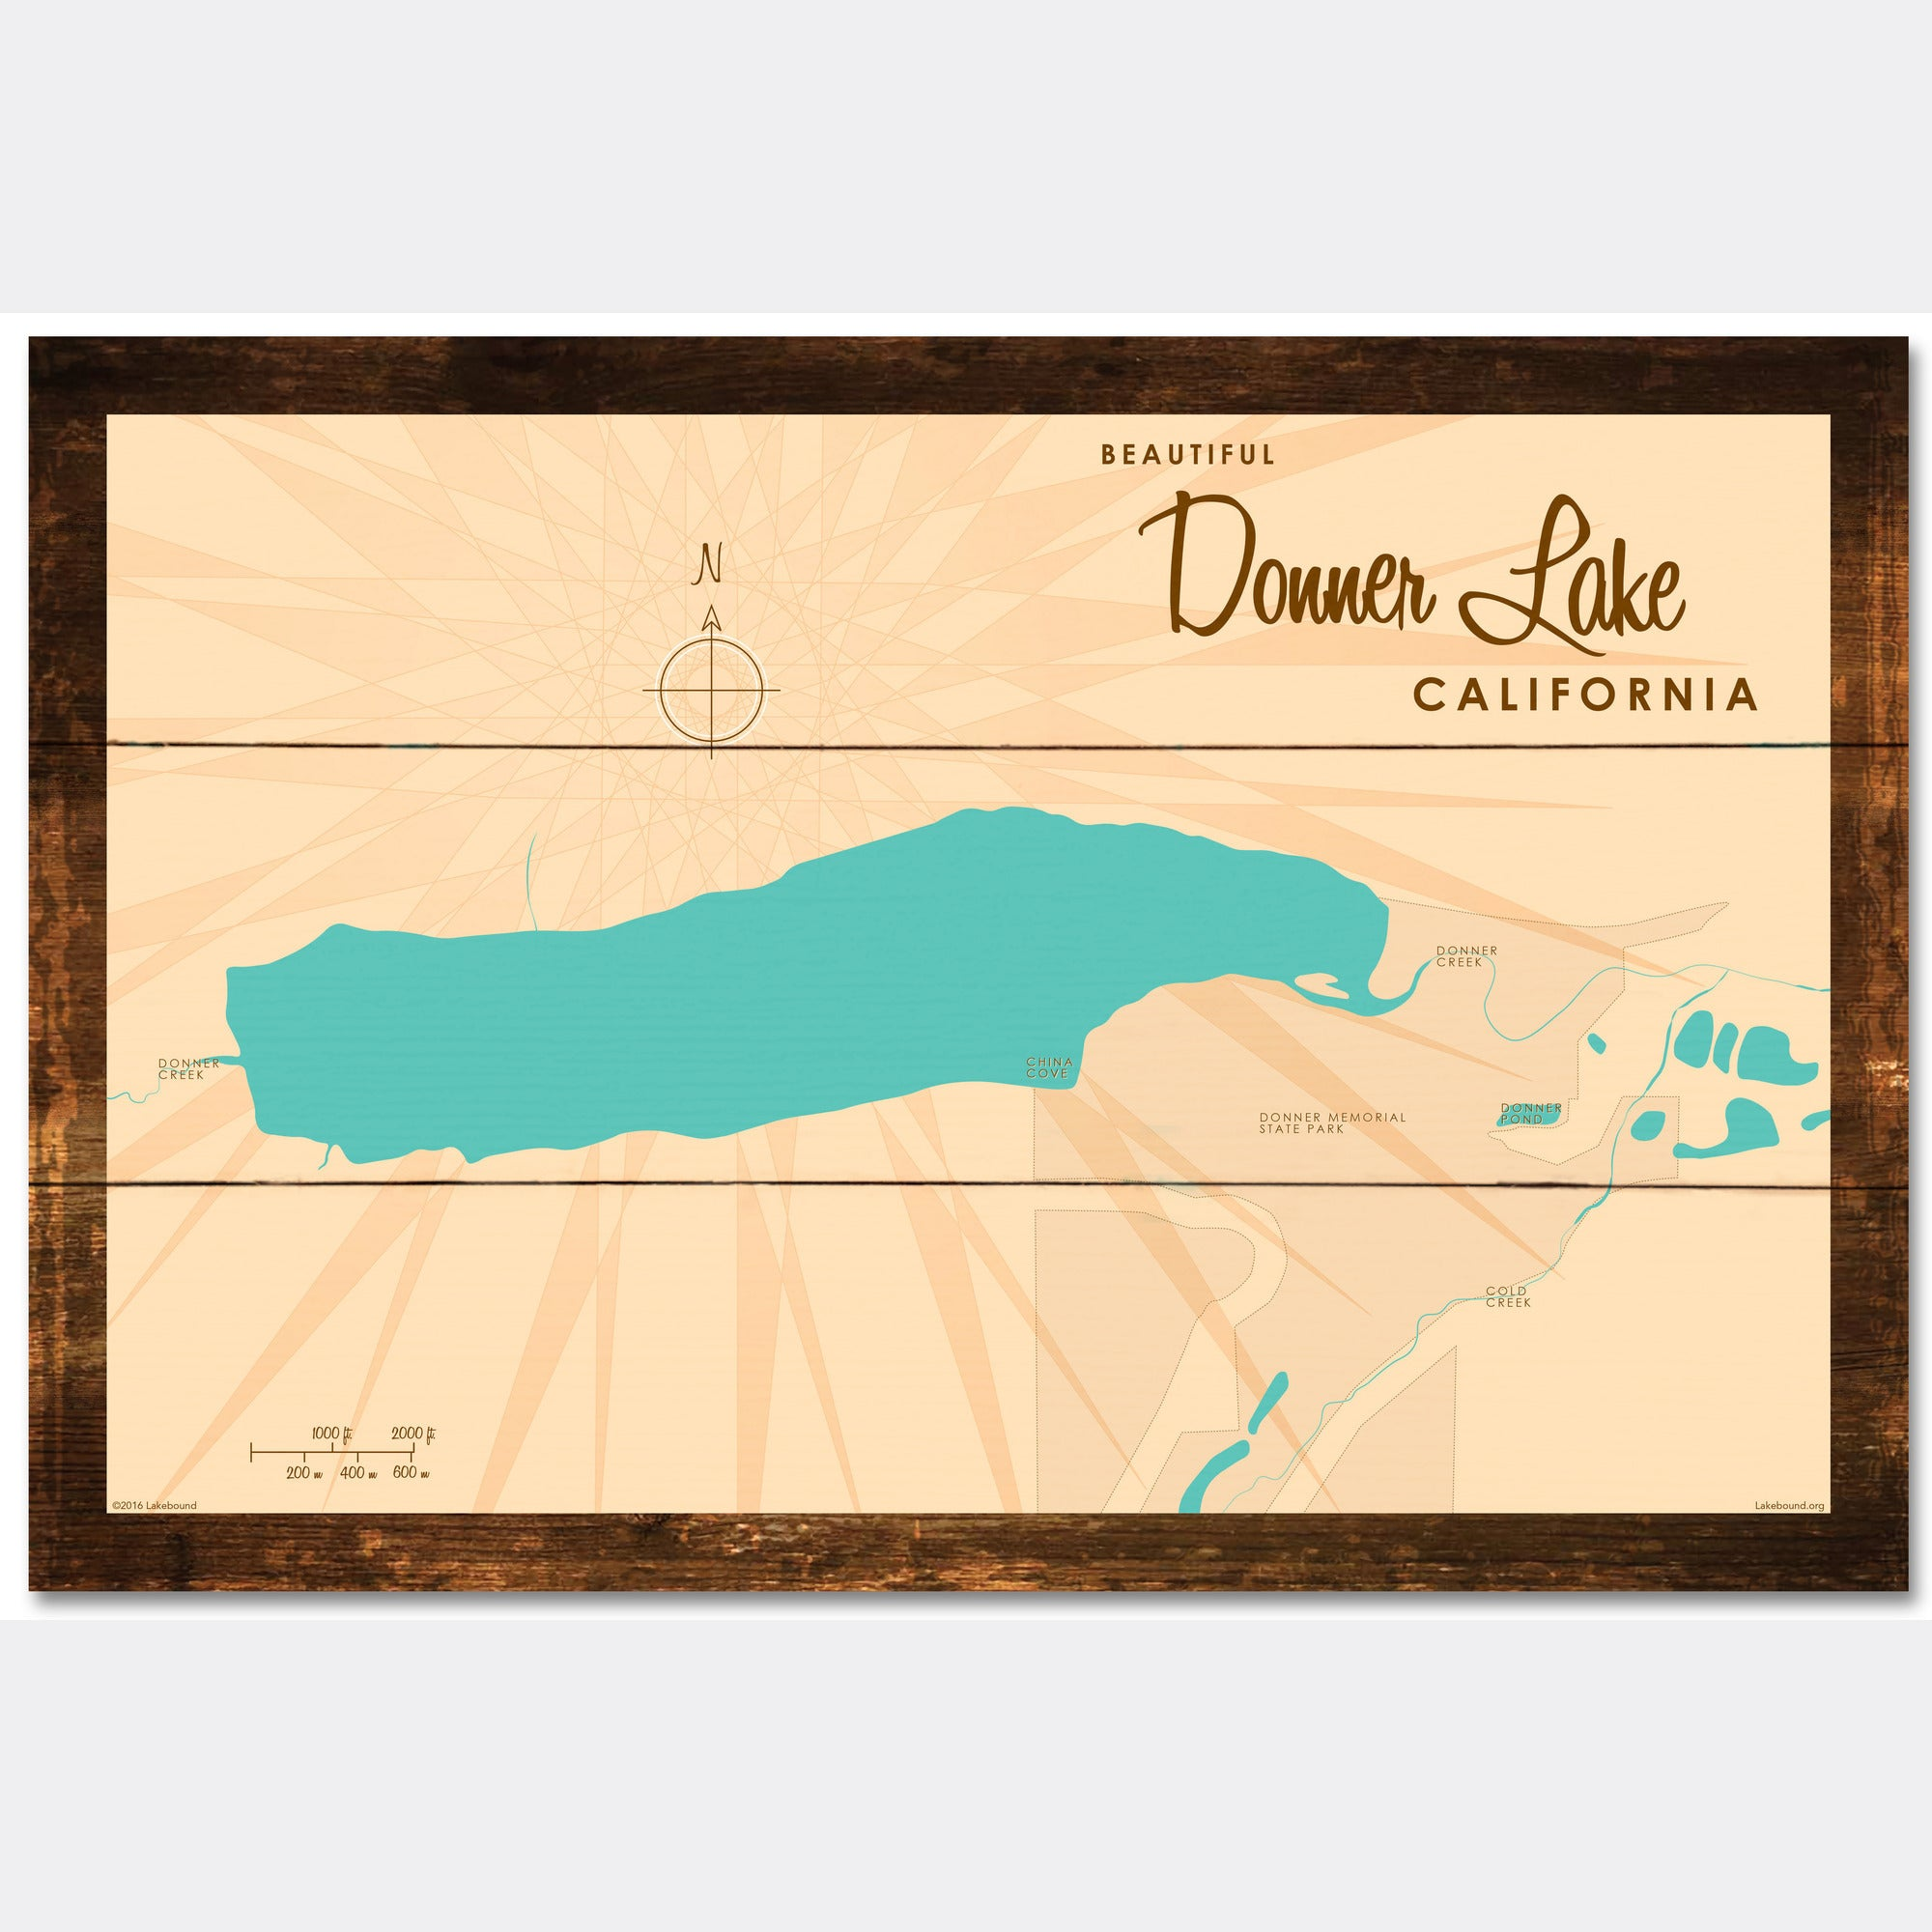 Donner Lake California, Rustic Wood Sign Map Art